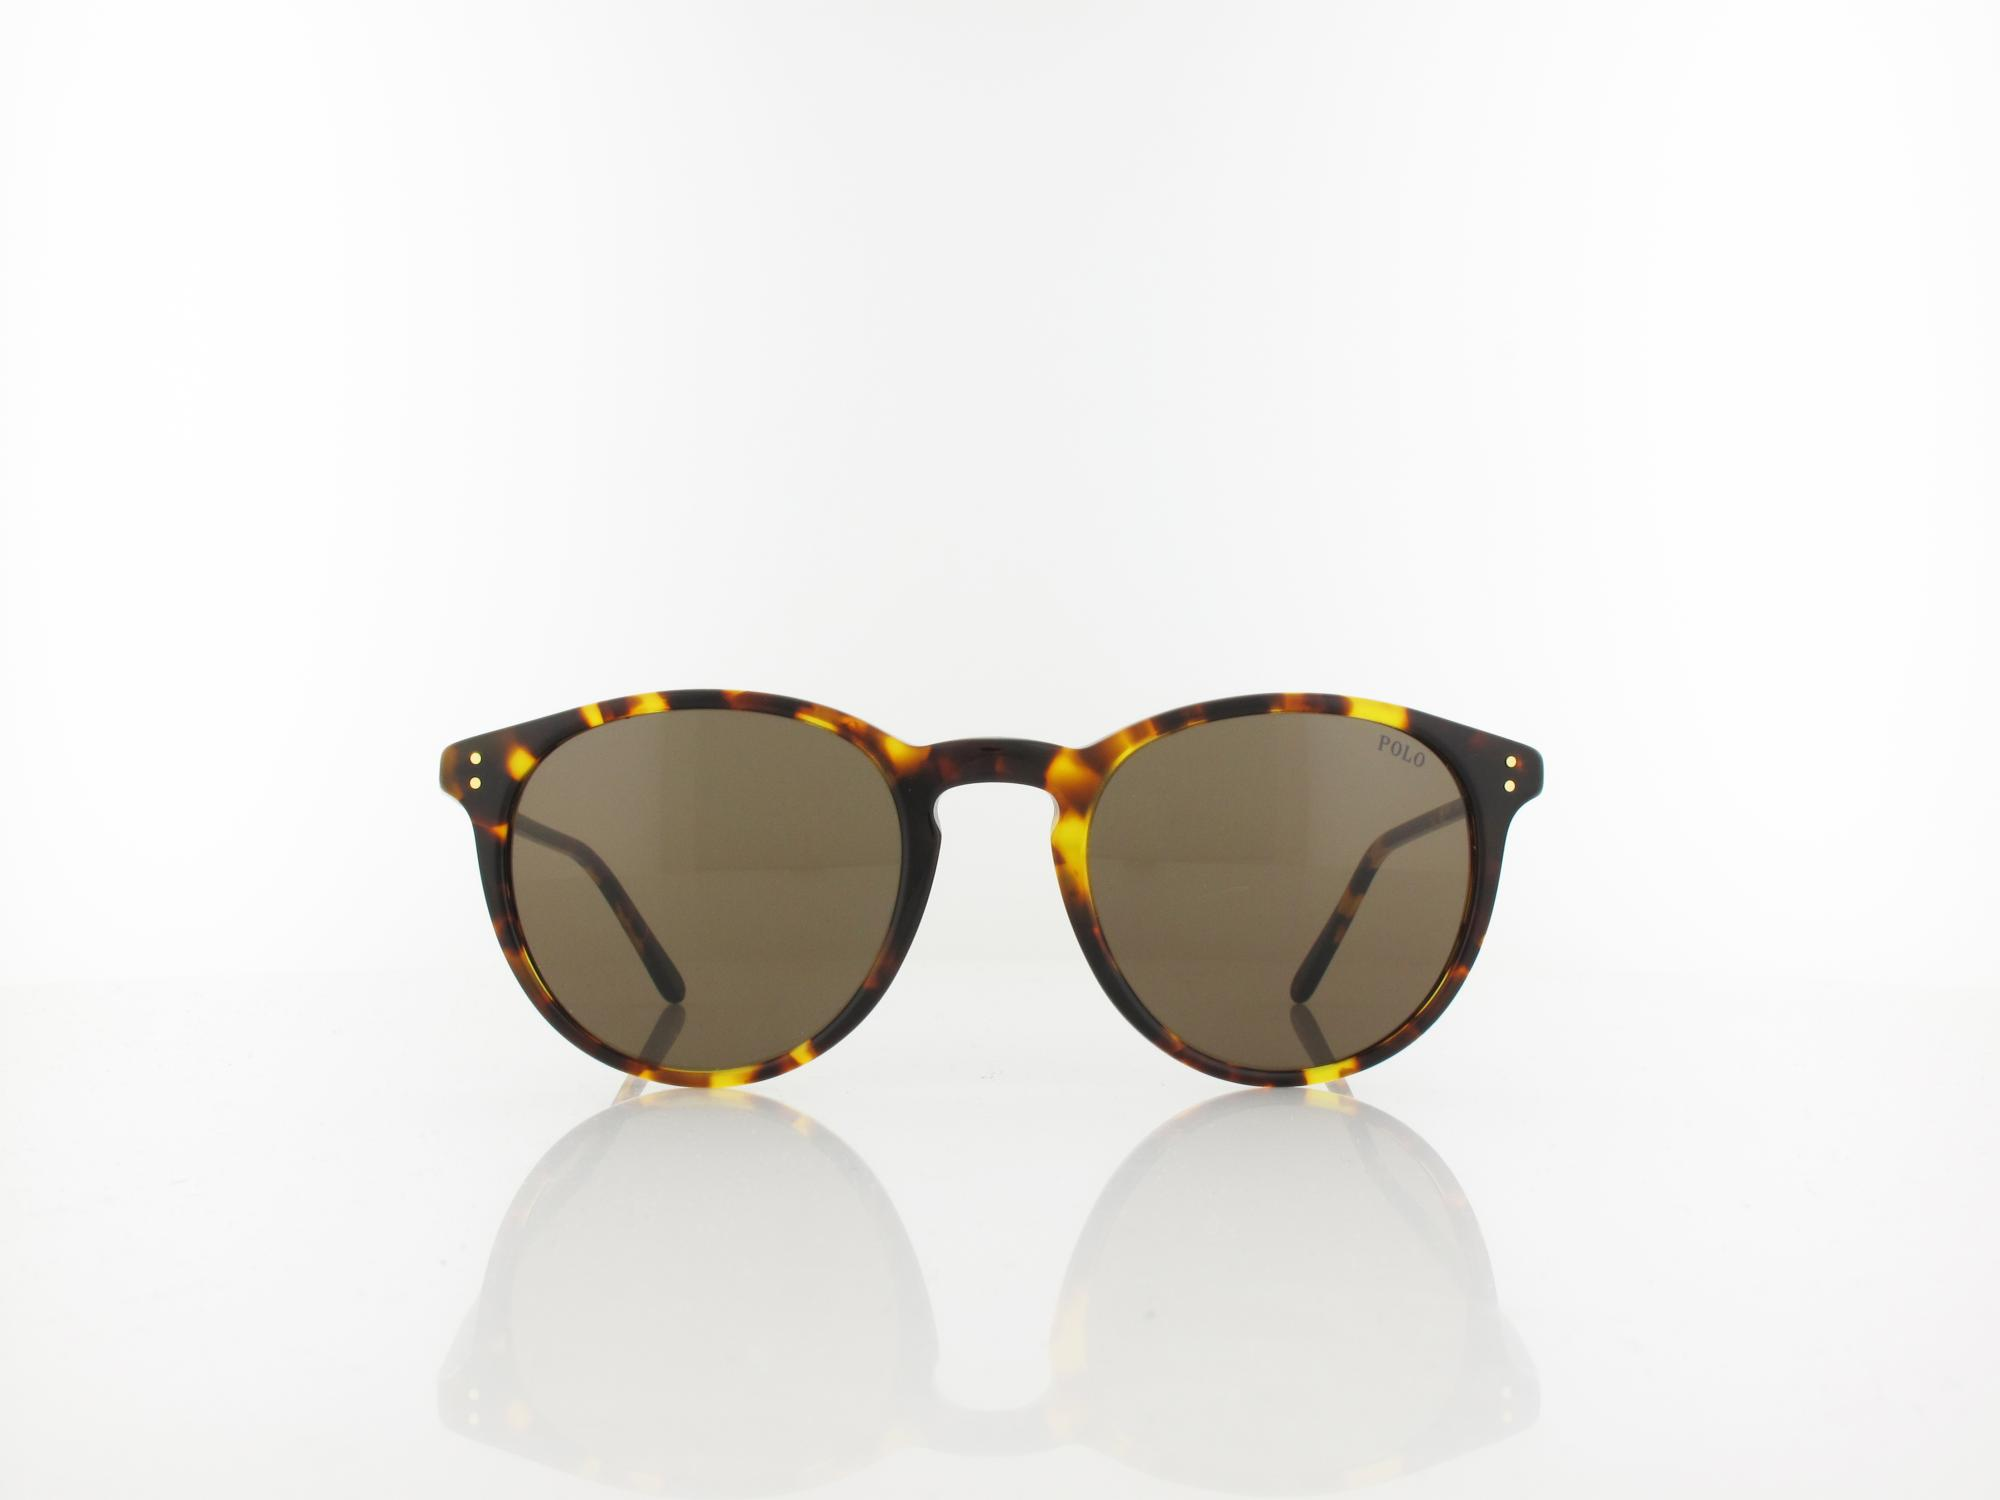 Polo Ralph Lauren | PH4110 513473 50 | shiny antique havana / brown